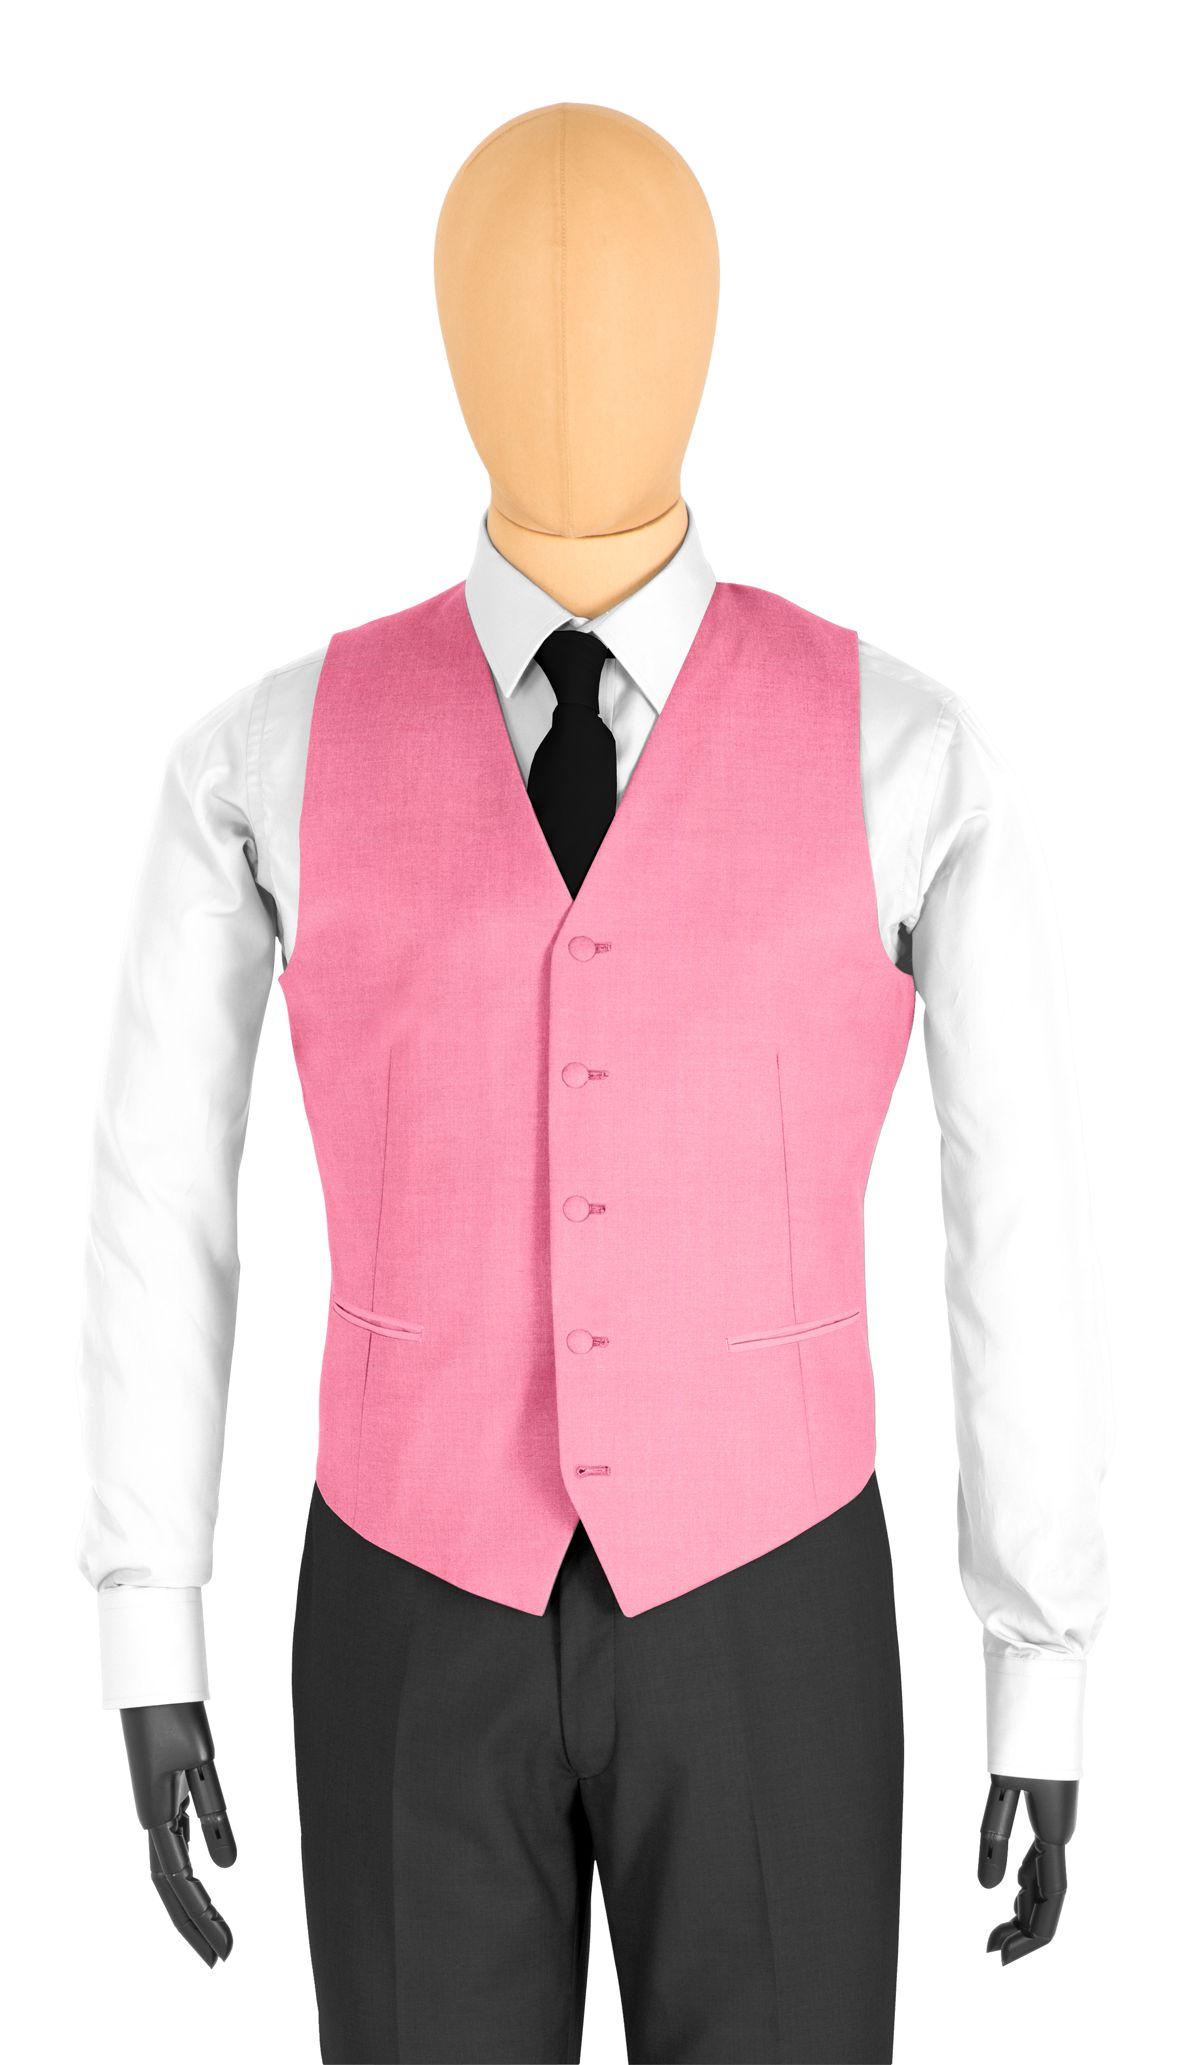 Gilet coupe 5 boutons rose